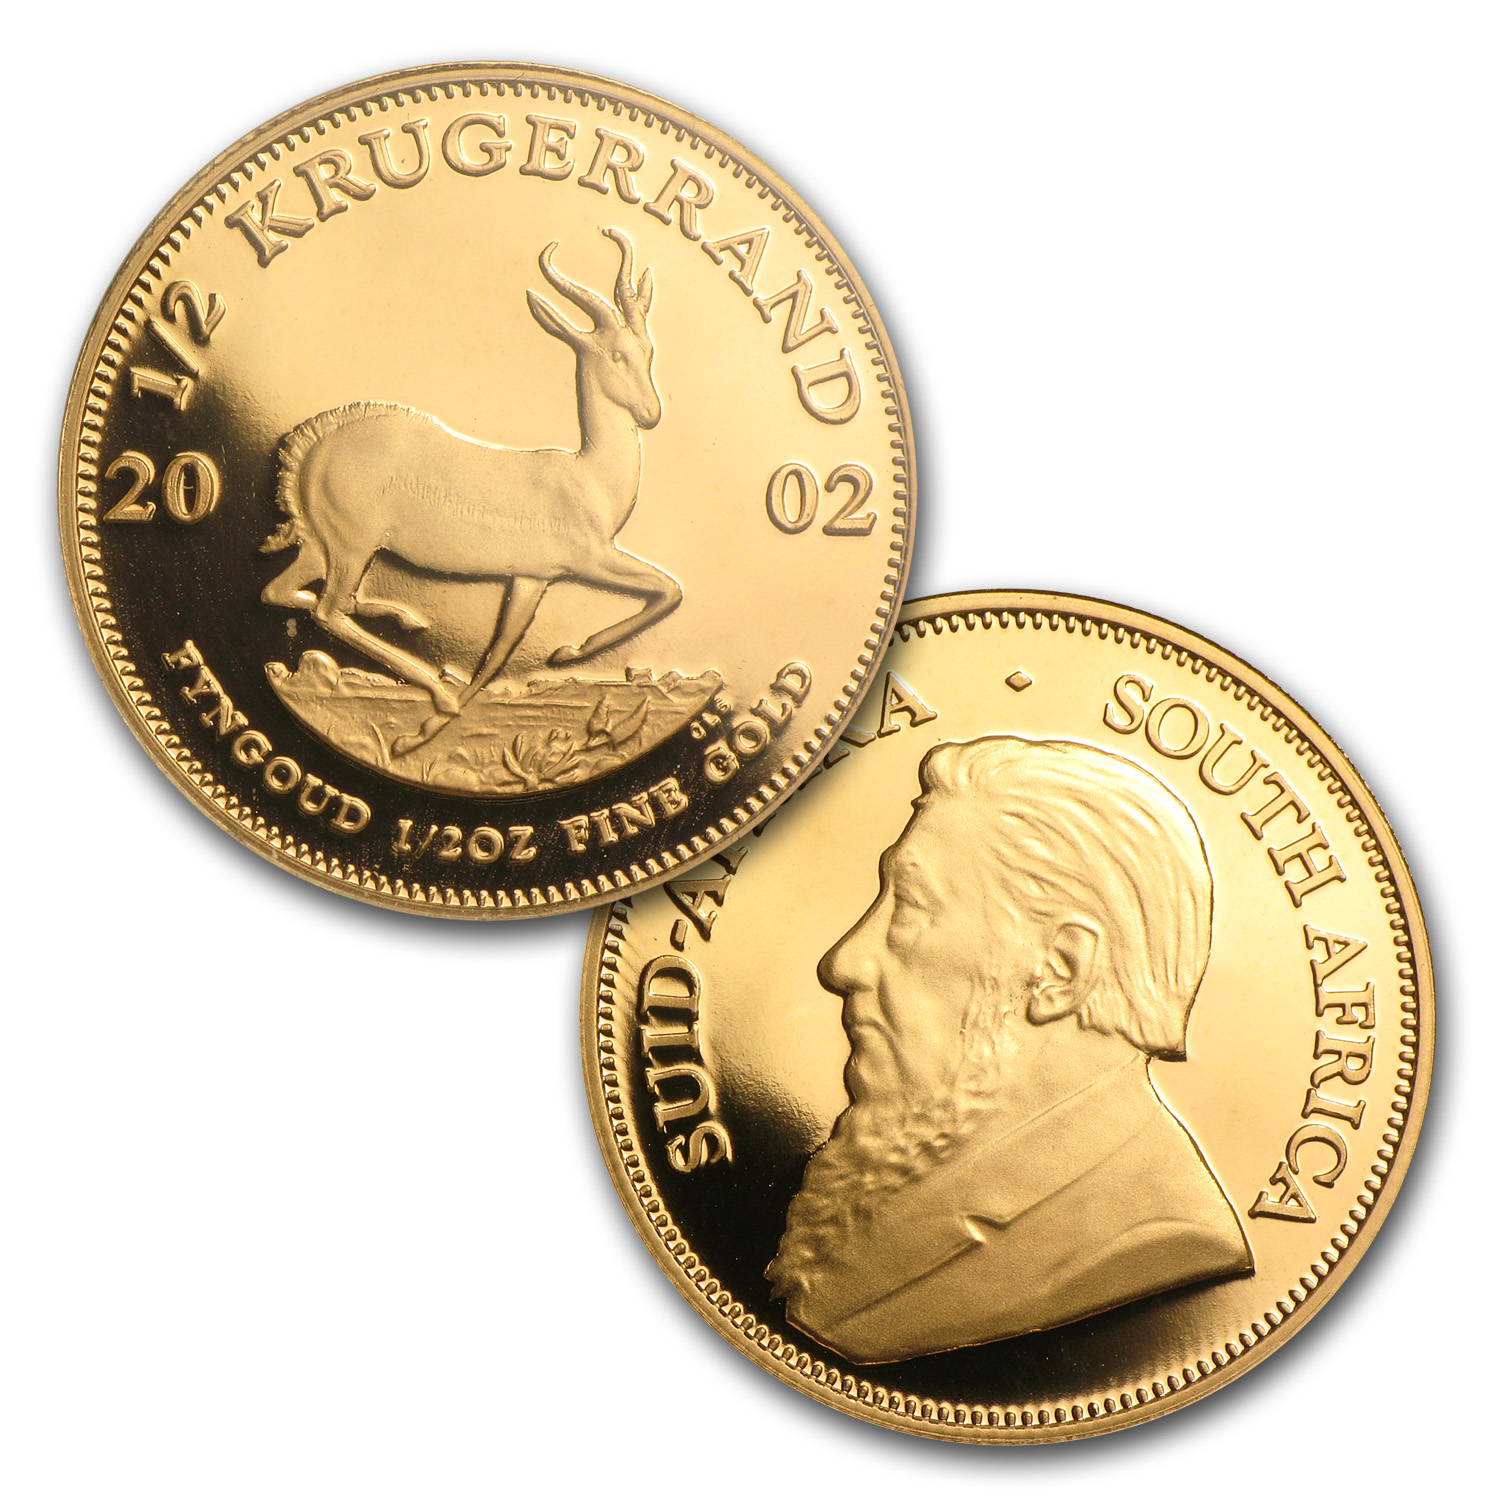 2002 4-Coin Proof Gold South African Krugerrand Set